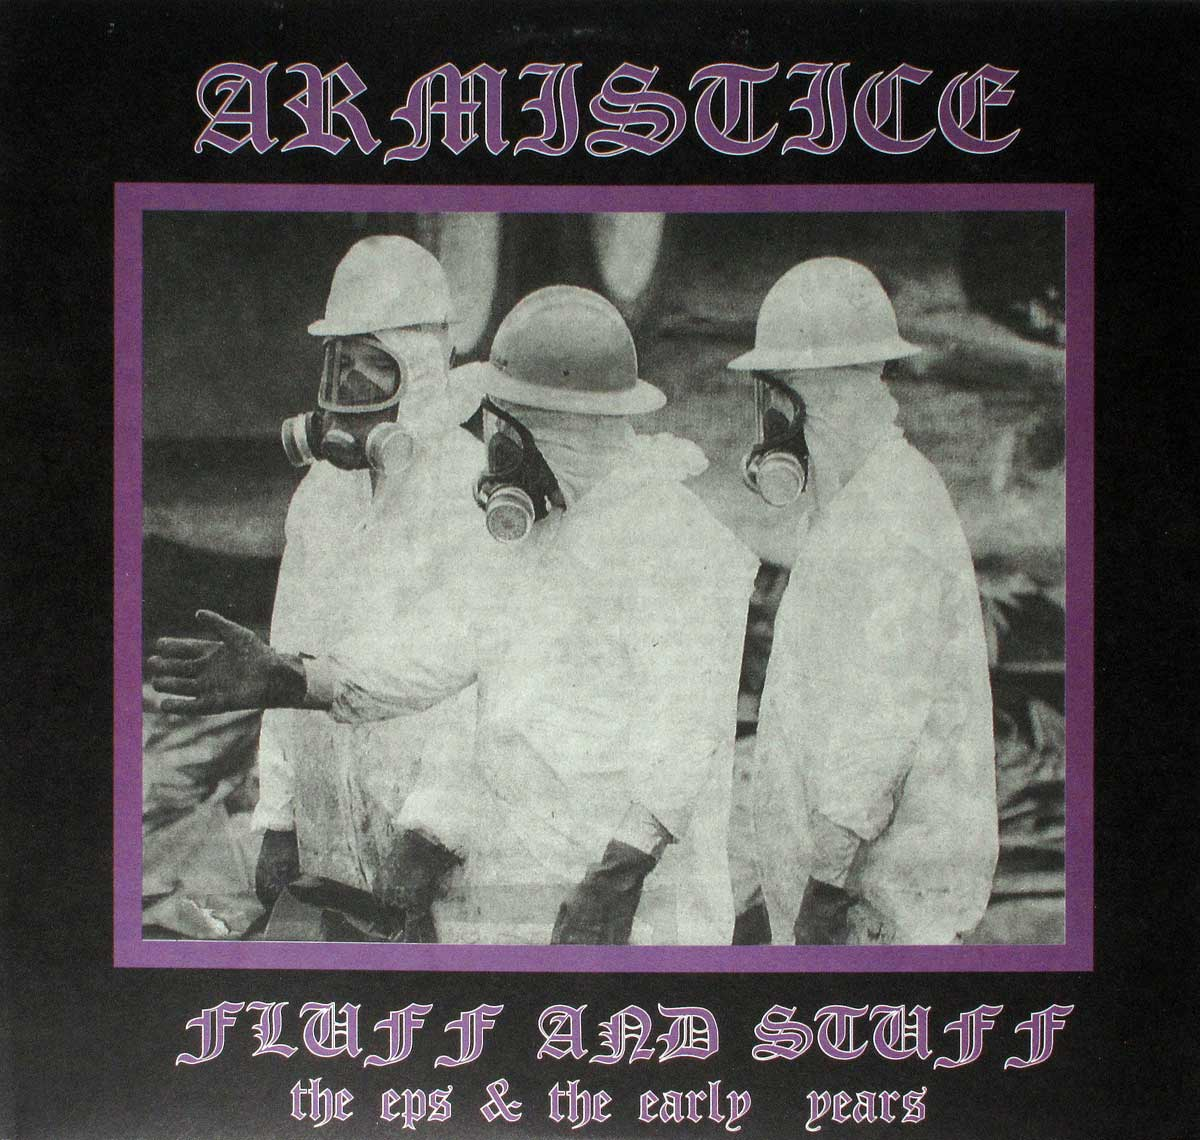 large photo of the album front cover of: RMISTICE FLUFF AND STUFF